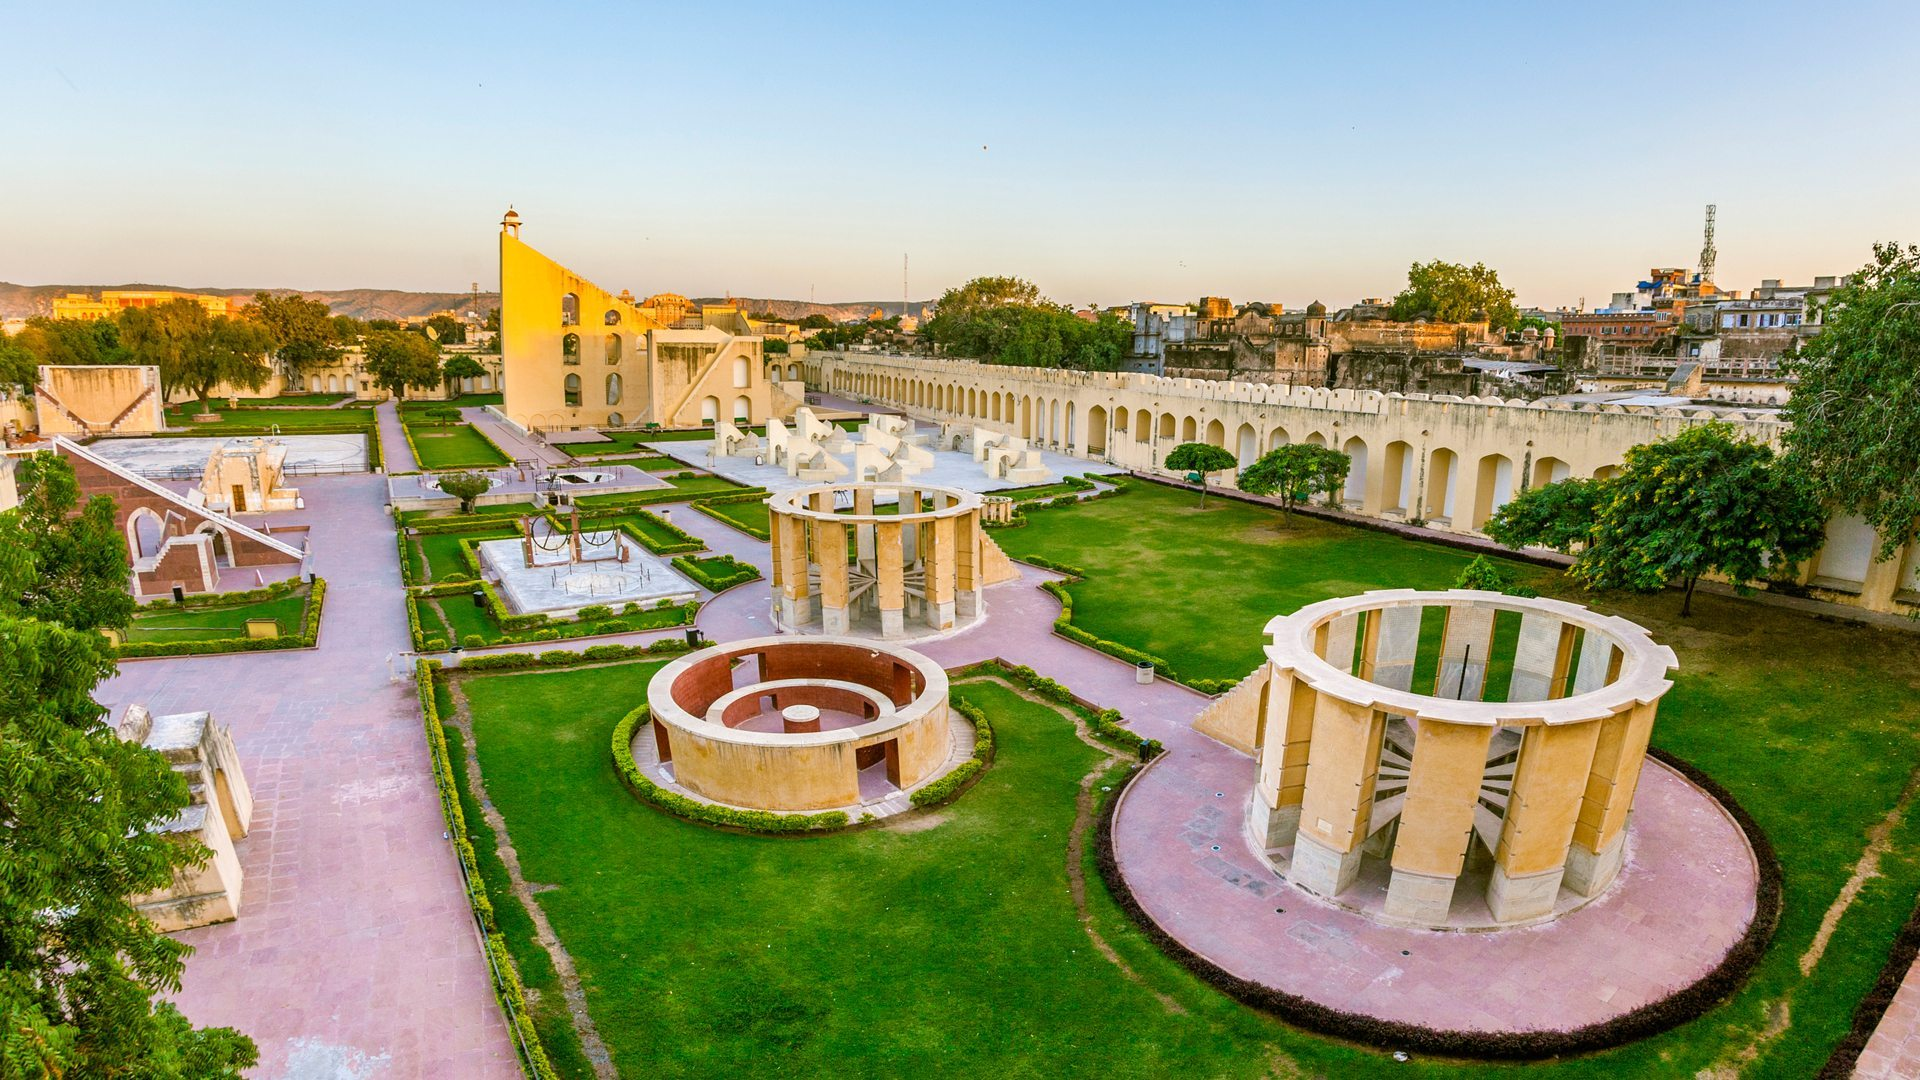 jamtar mantar jaipur - world heritage sites in india